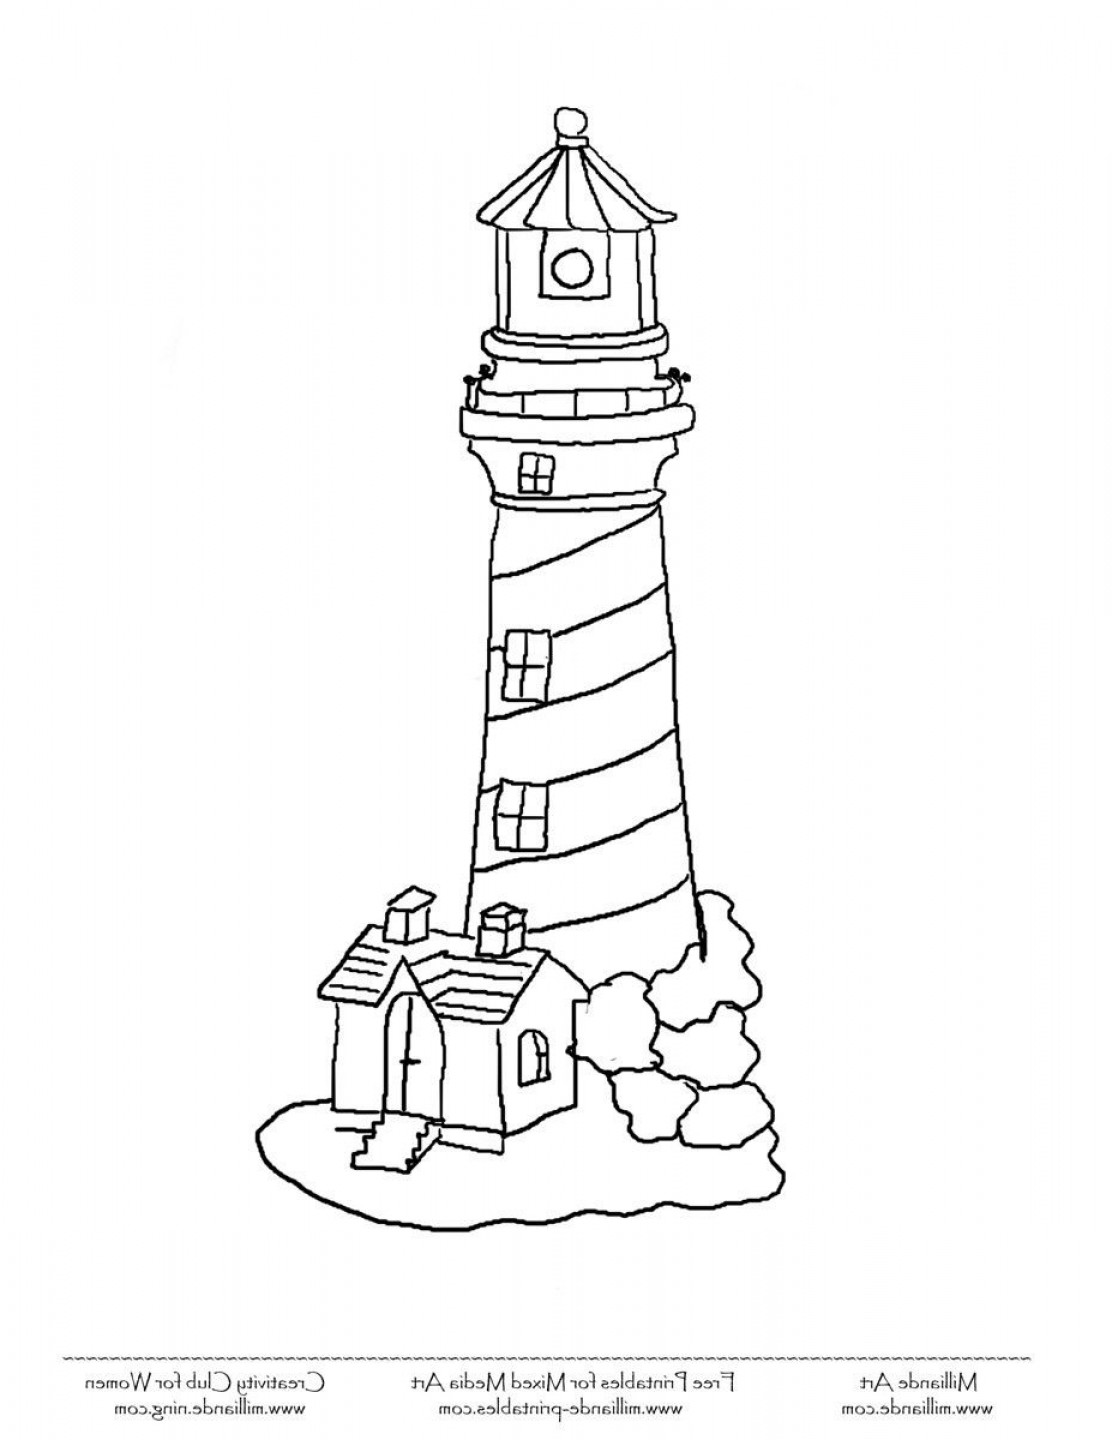 Lighthouse And Ocean Coloring Pages - Worksheet & Coloring Pages